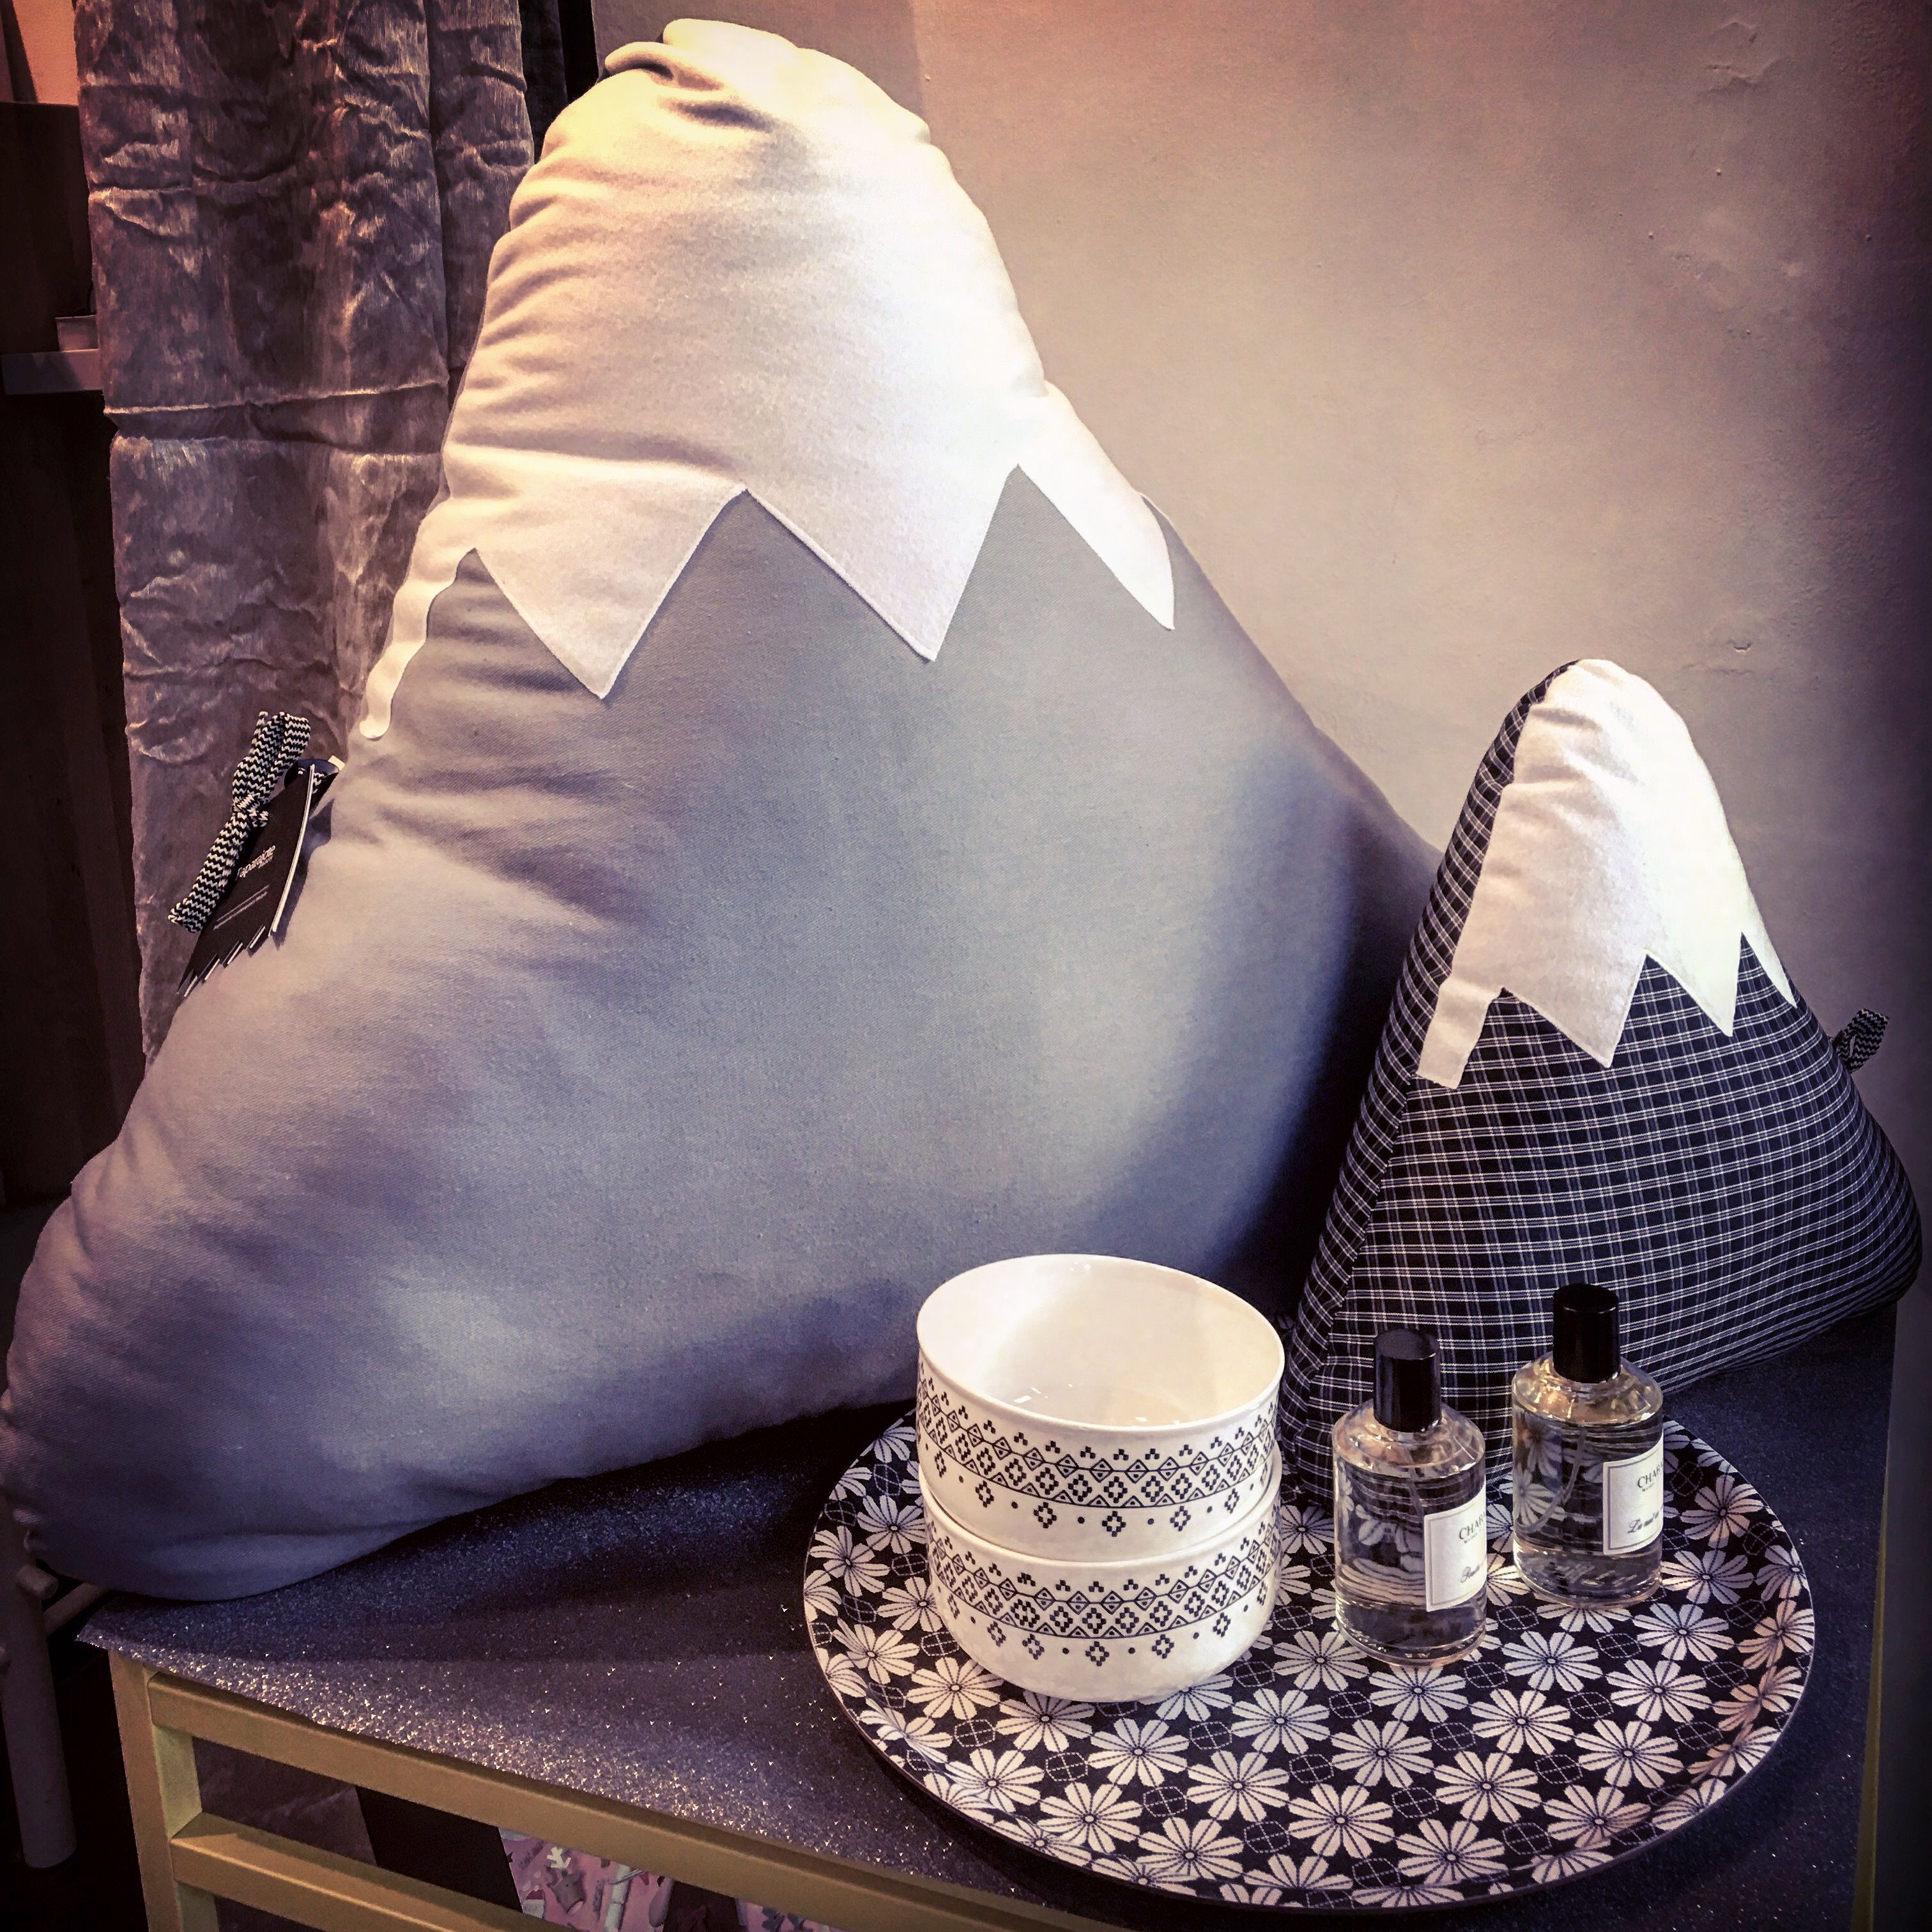 #black  #addicted !...Showcase Now!  #cushion #mountains #paparajote #pouf #pottery #potterystudio #mrmrsclynk #server #prints #blackandwhite #colorfulhome #instadaily #igertorino #shopping #christmasshopping #christmastime #lastweek #chabaud #homefragrance #turin